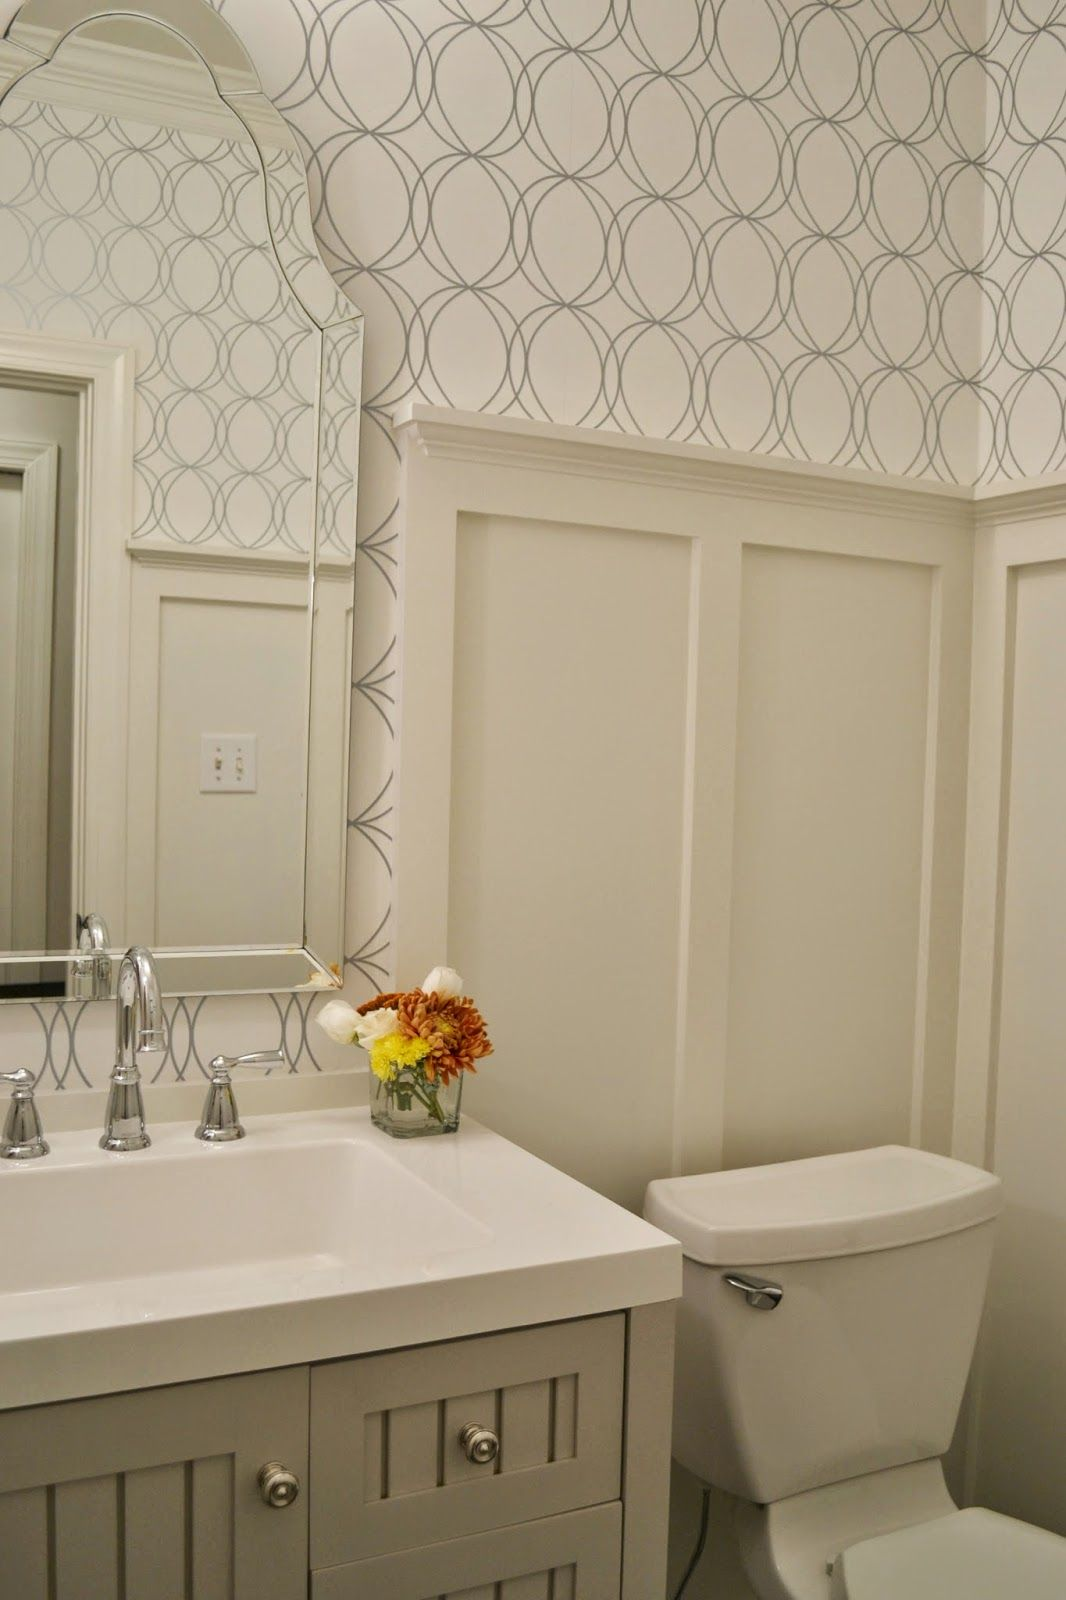 Board And Batten Wall In Small Bathroom | Hometalk